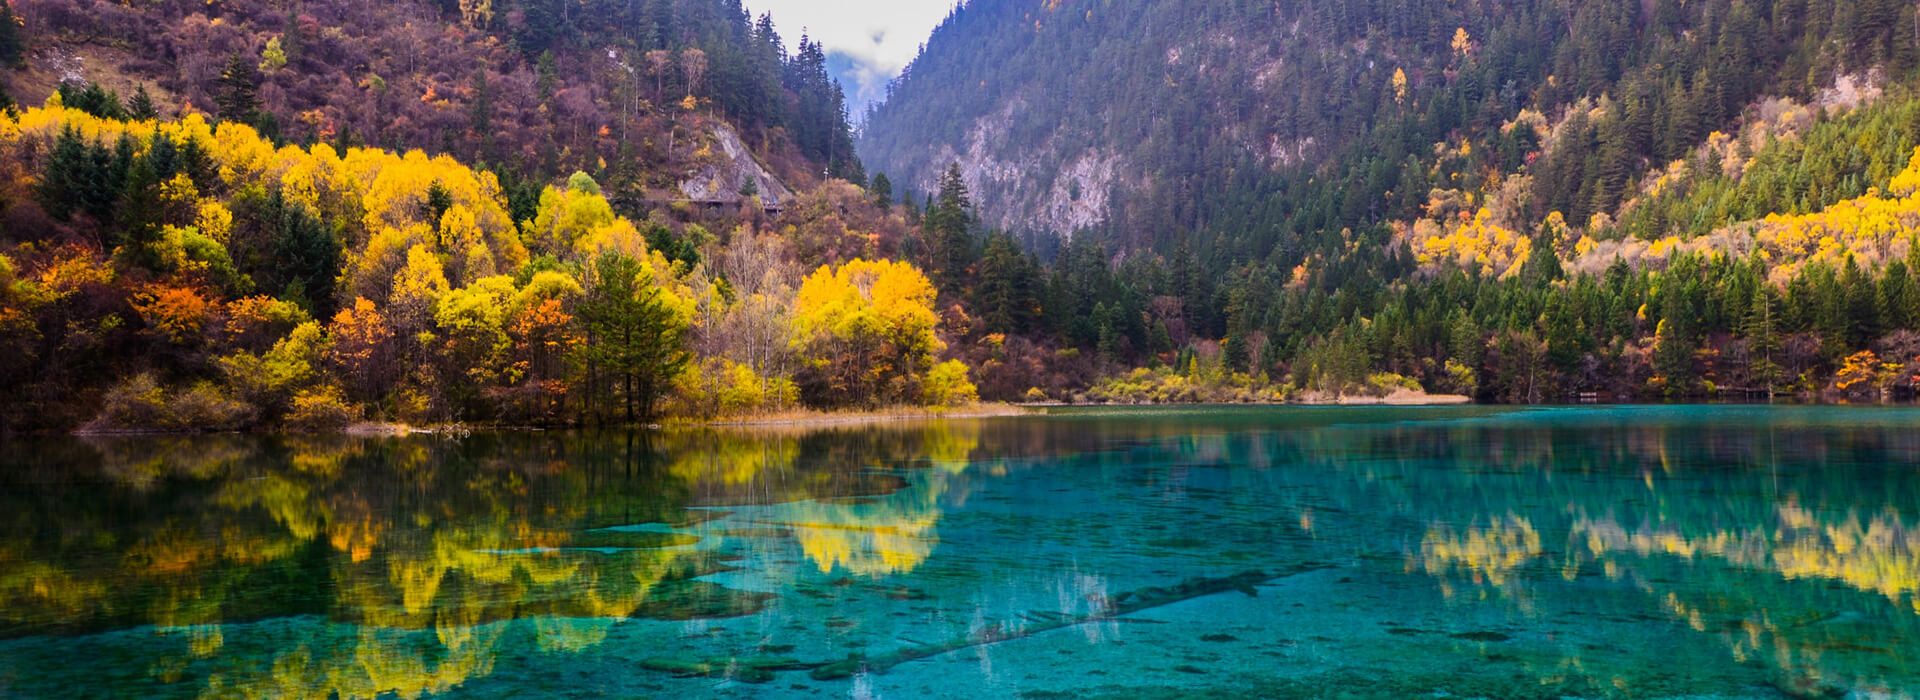 Best Ten Natural Beauty in China